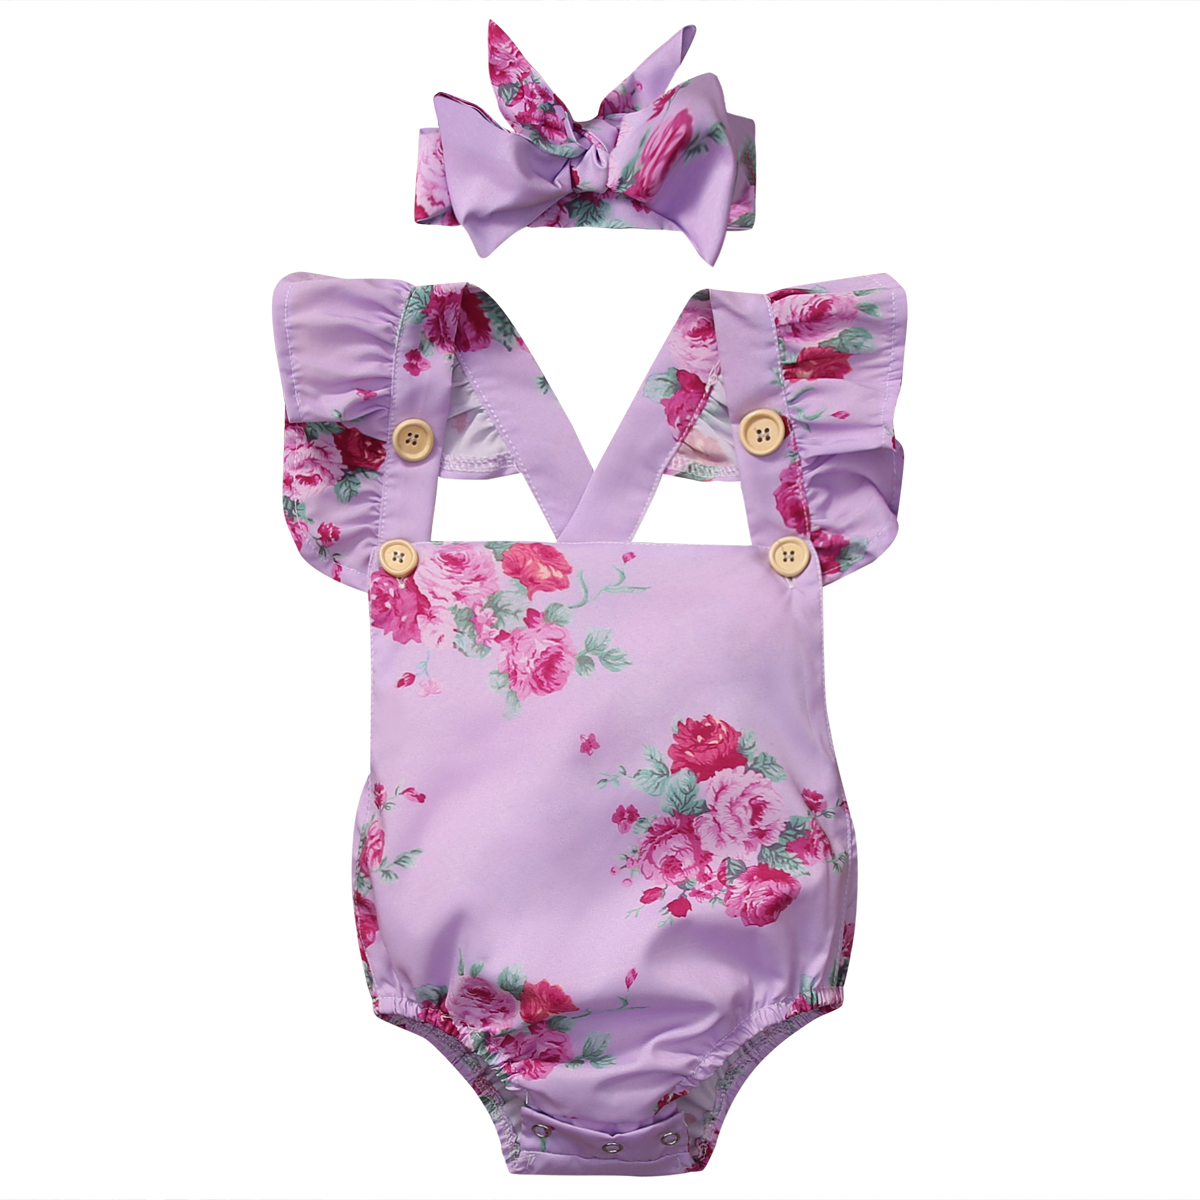 Pudcoco 0 24M Newborn Infant Baby Girl Clothing Floral ...